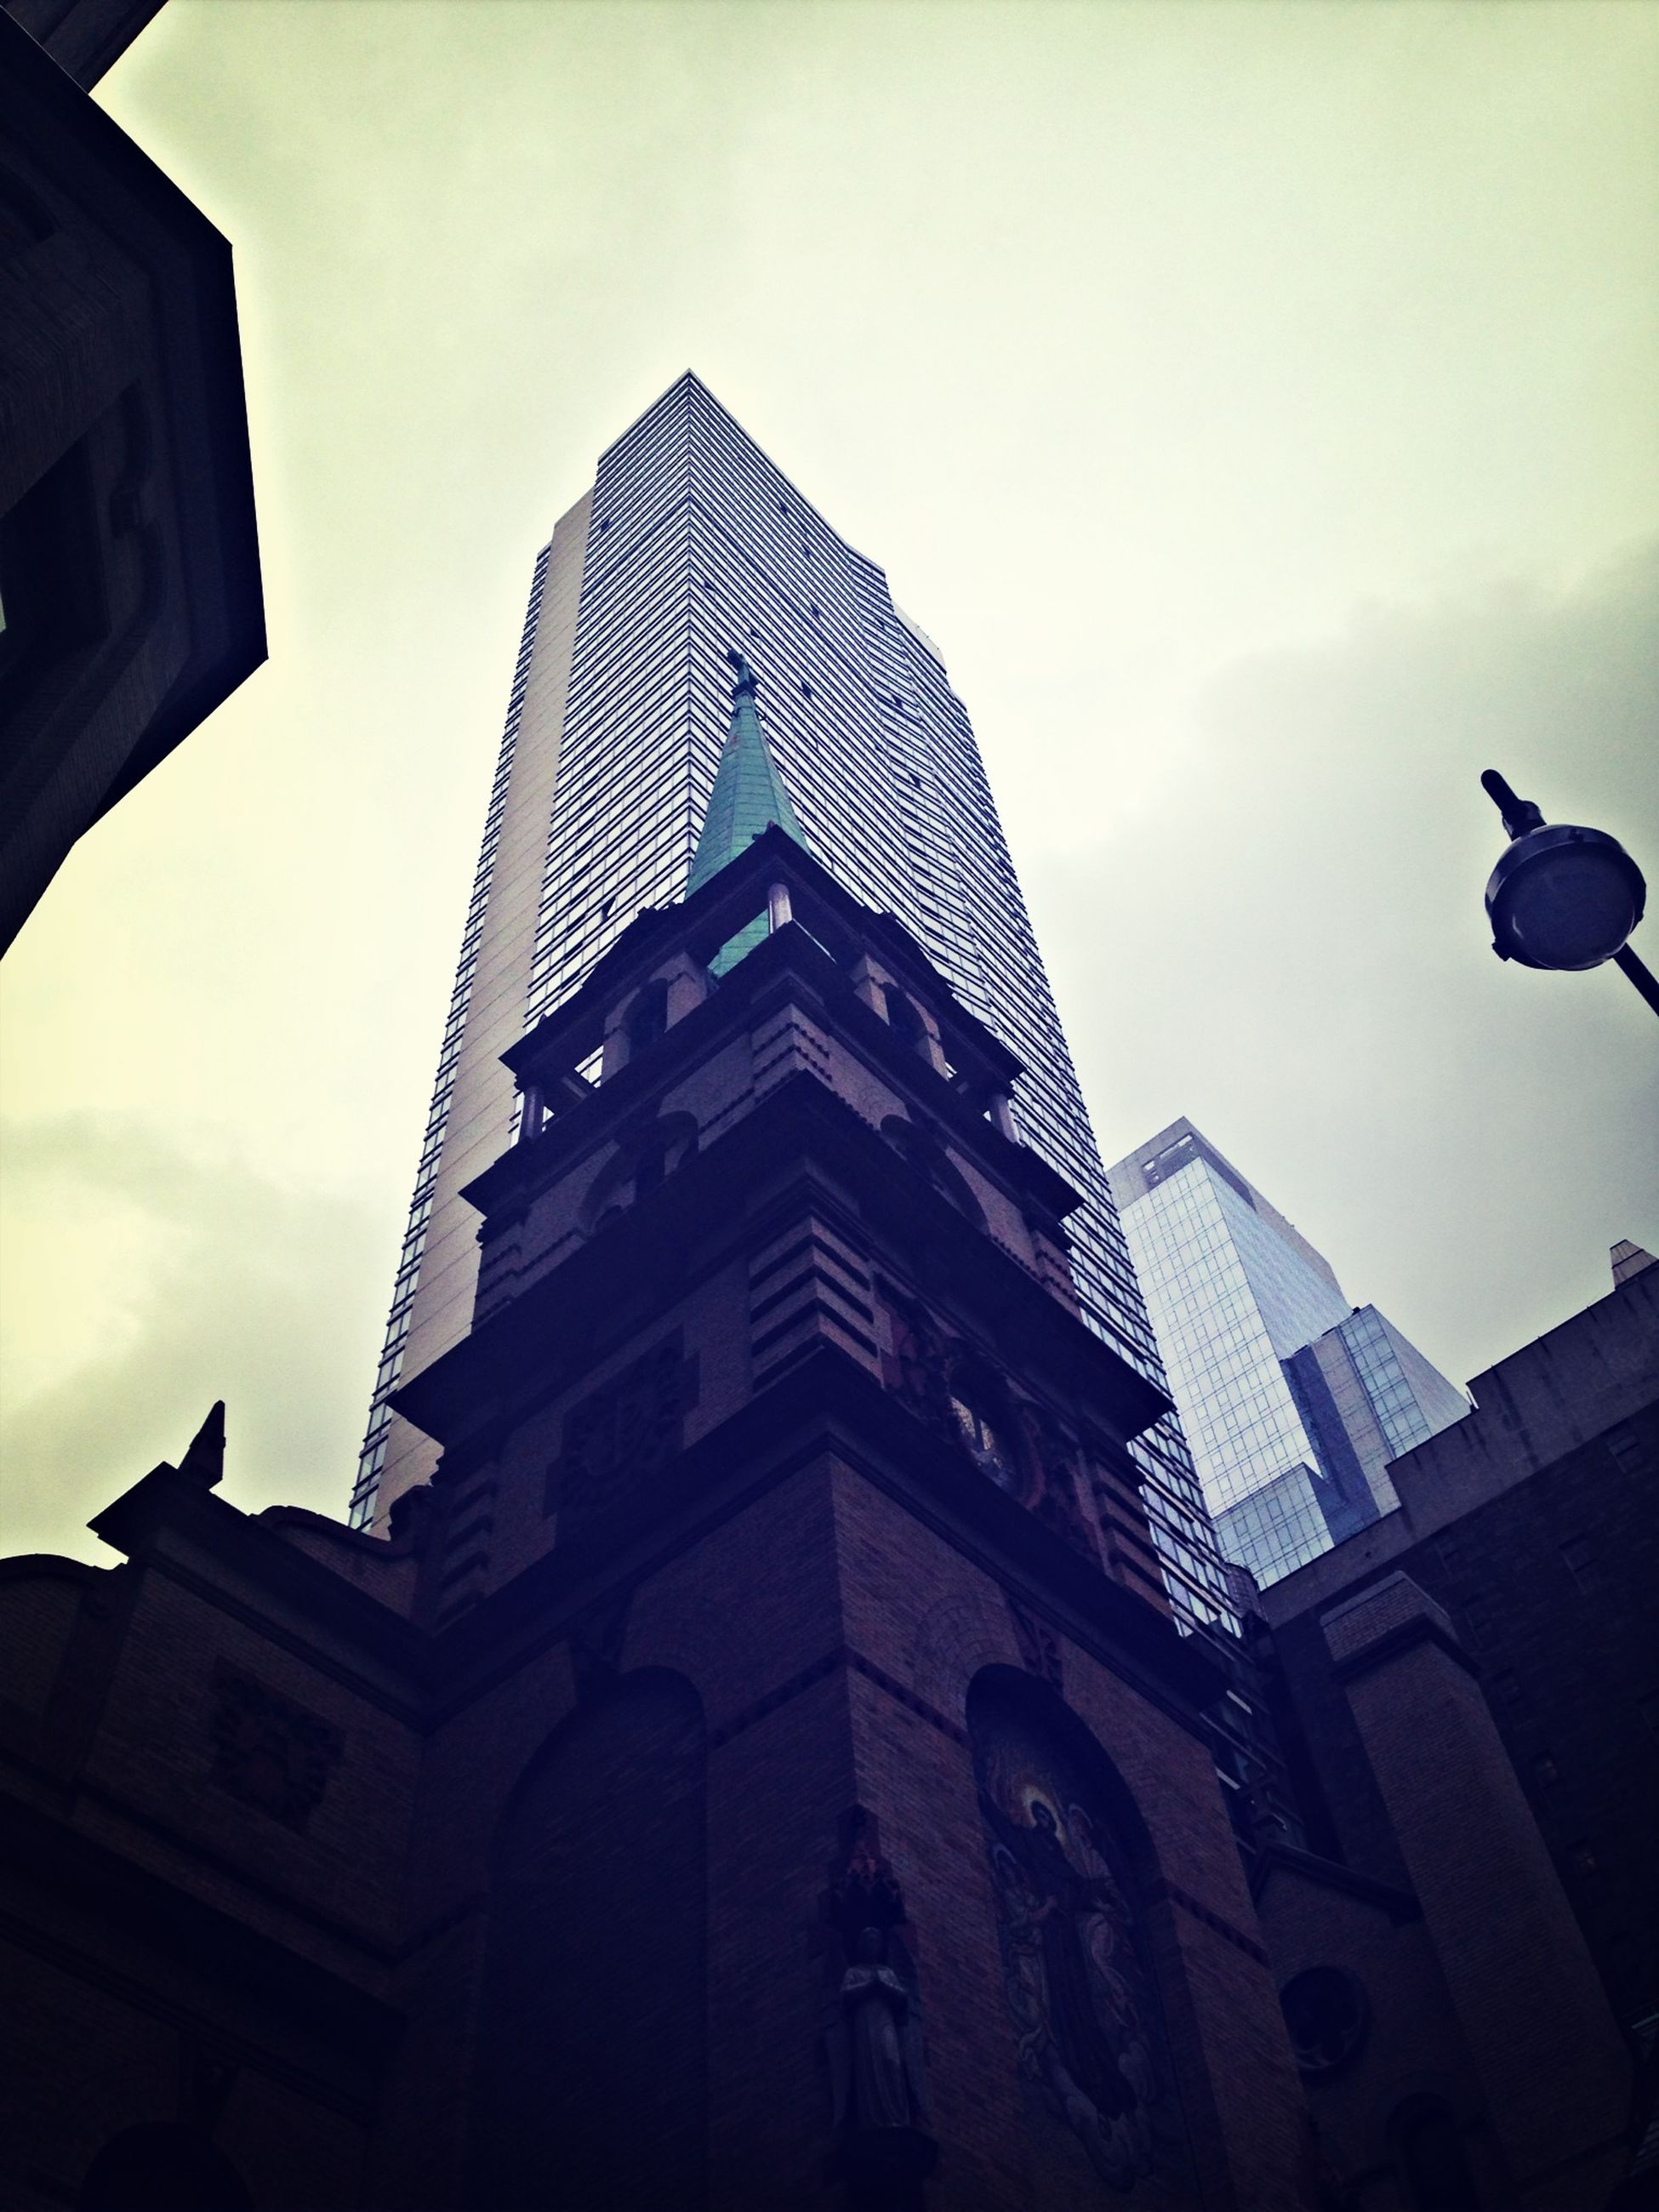 low angle view, architecture, building exterior, built structure, sky, city, bird, tower, tall - high, building, office building, modern, skyscraper, day, outdoors, cloud - sky, no people, animal themes, glass - material, window